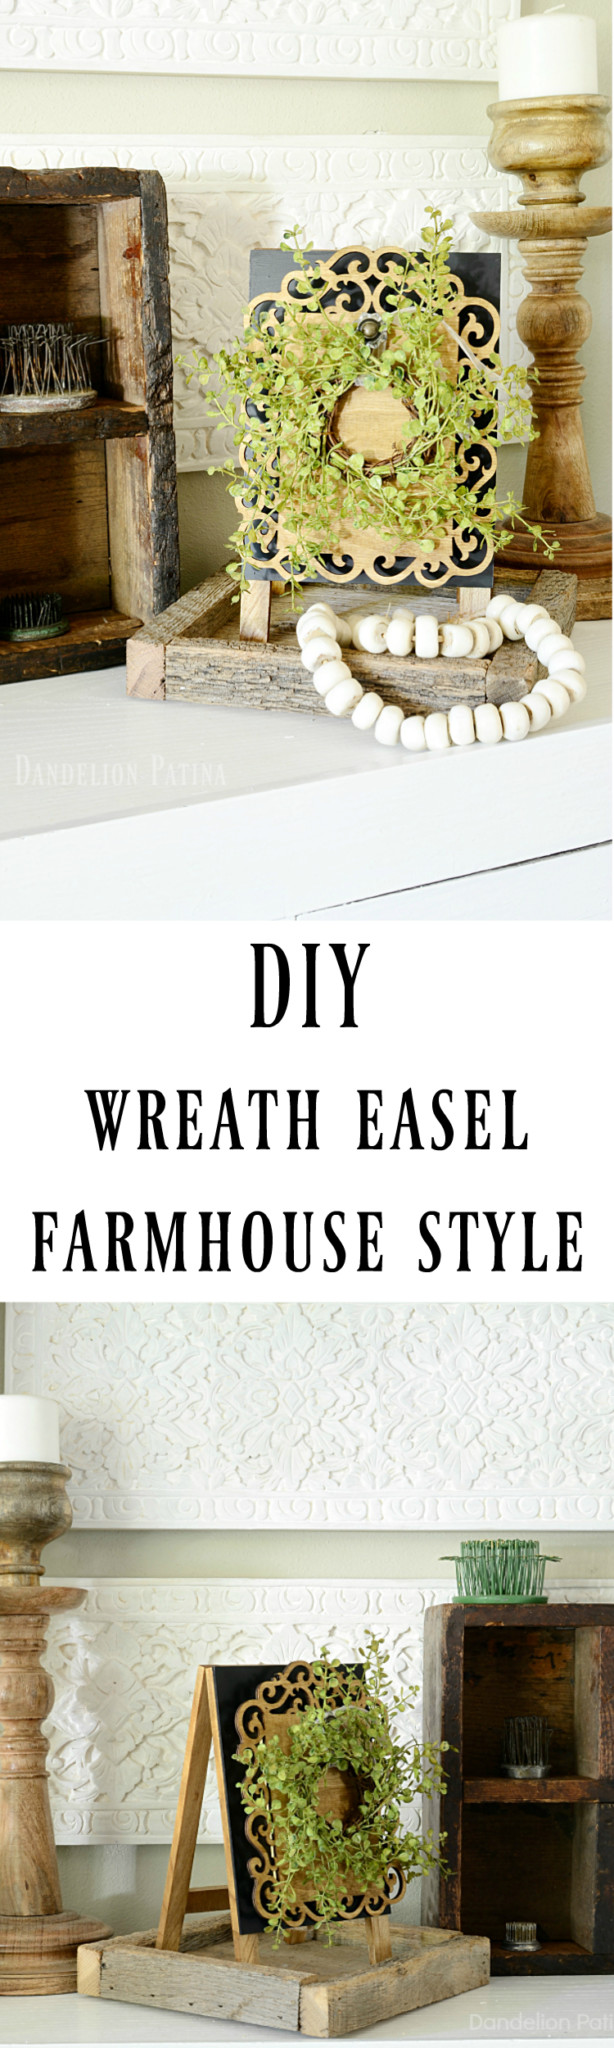 farmhouse style wreath easel